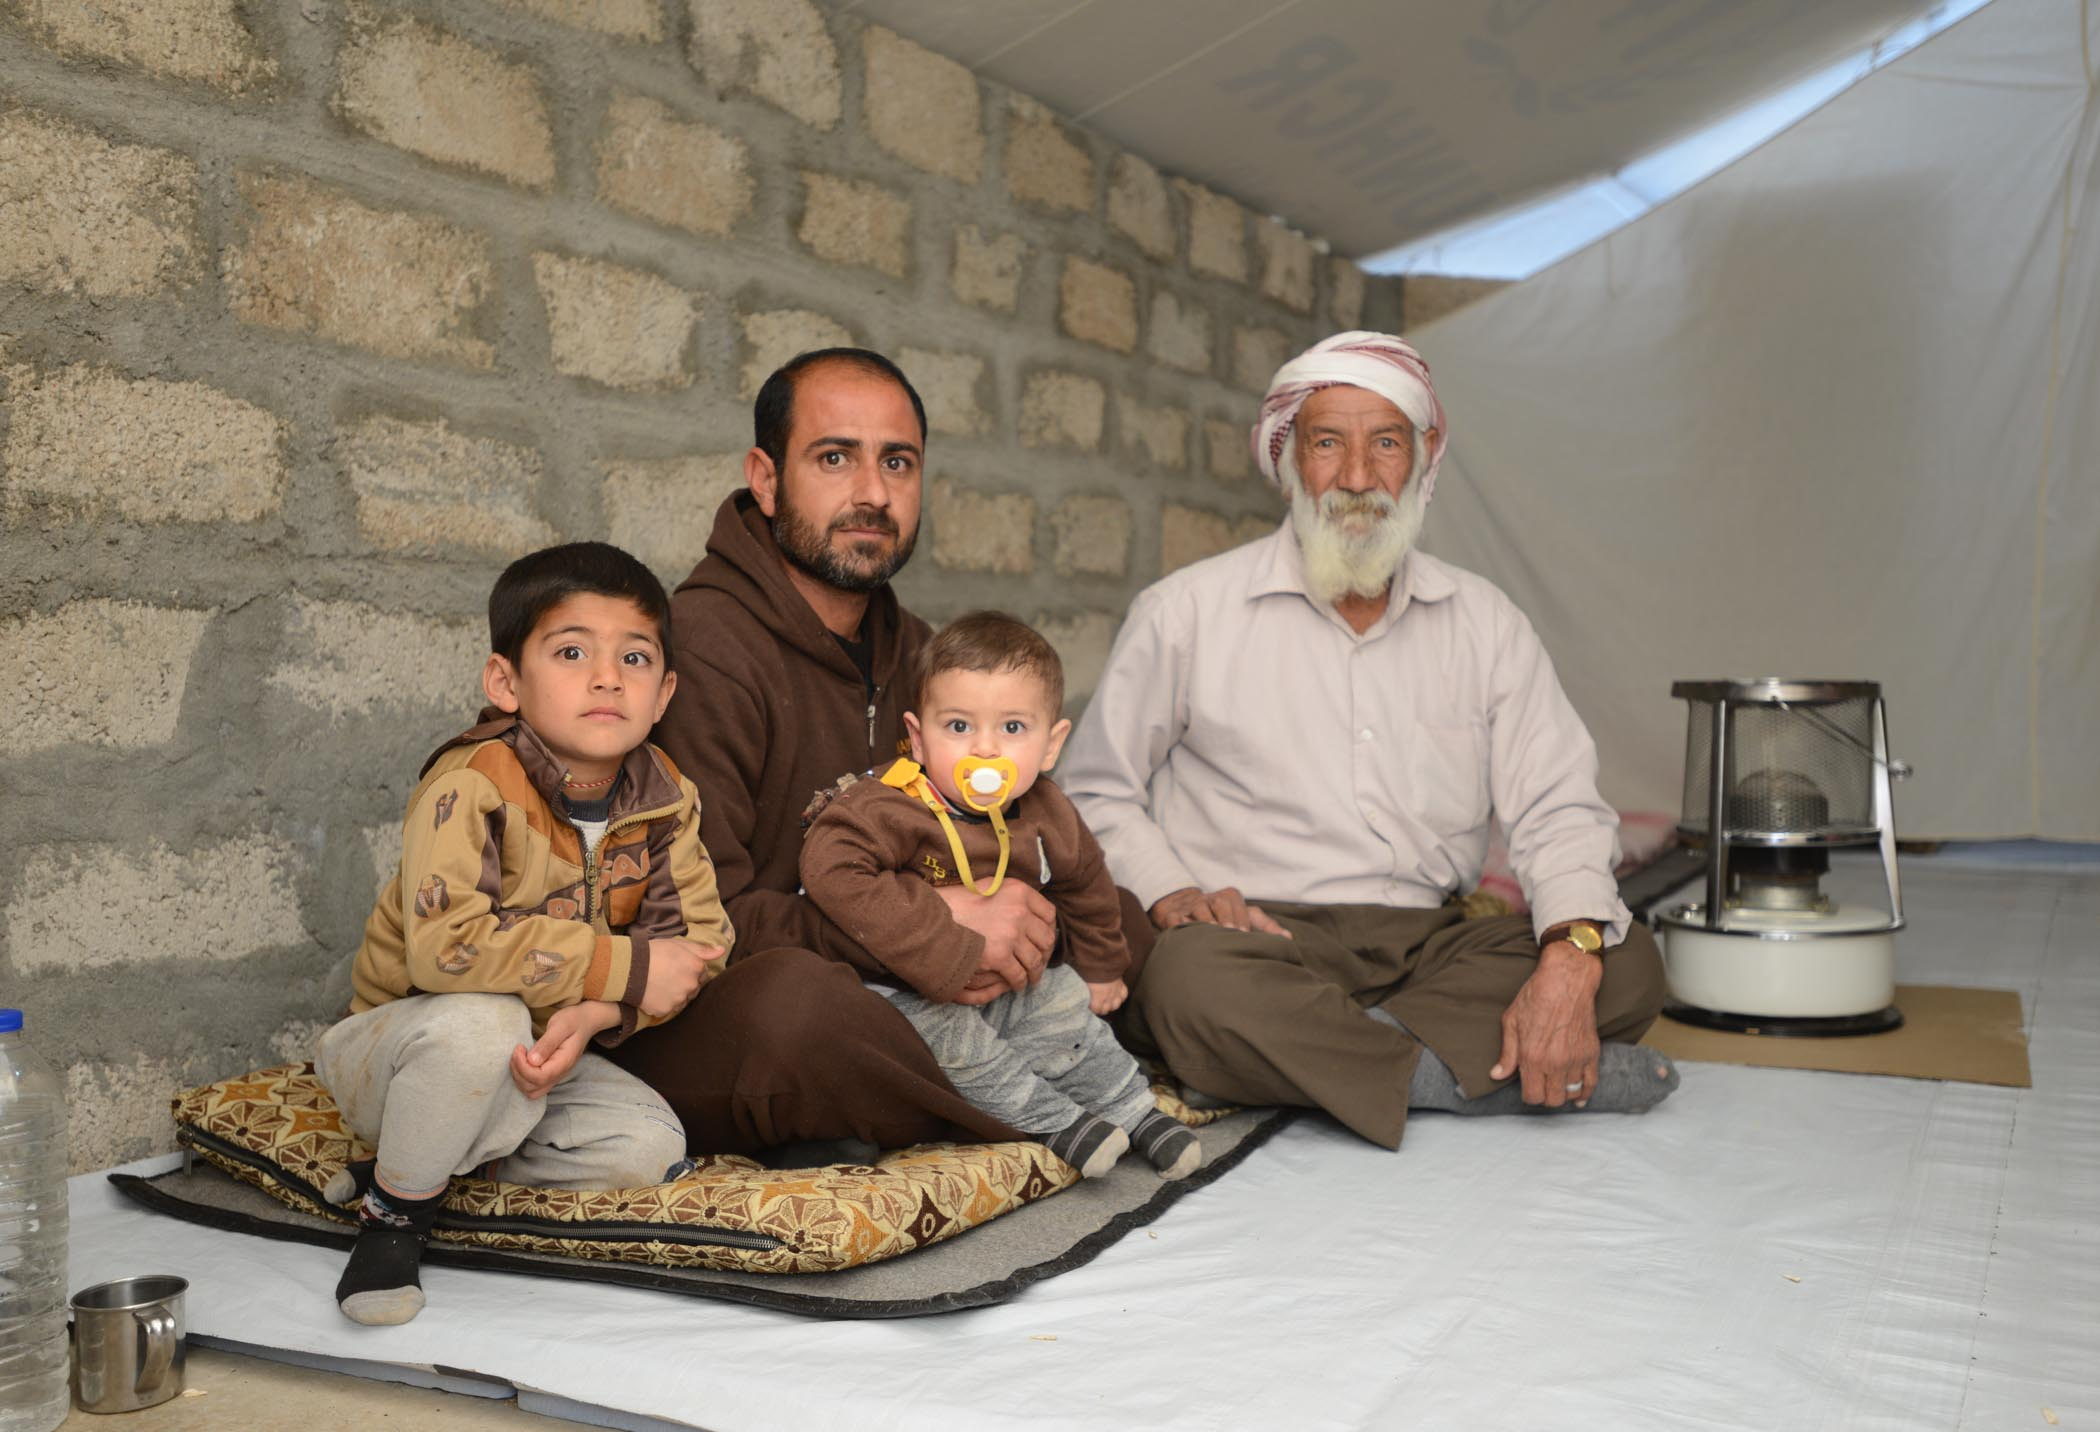 A Yazidi Grandfather, His Son, And Two Grandchildren In Their Spotless Tent In Khanke Camp